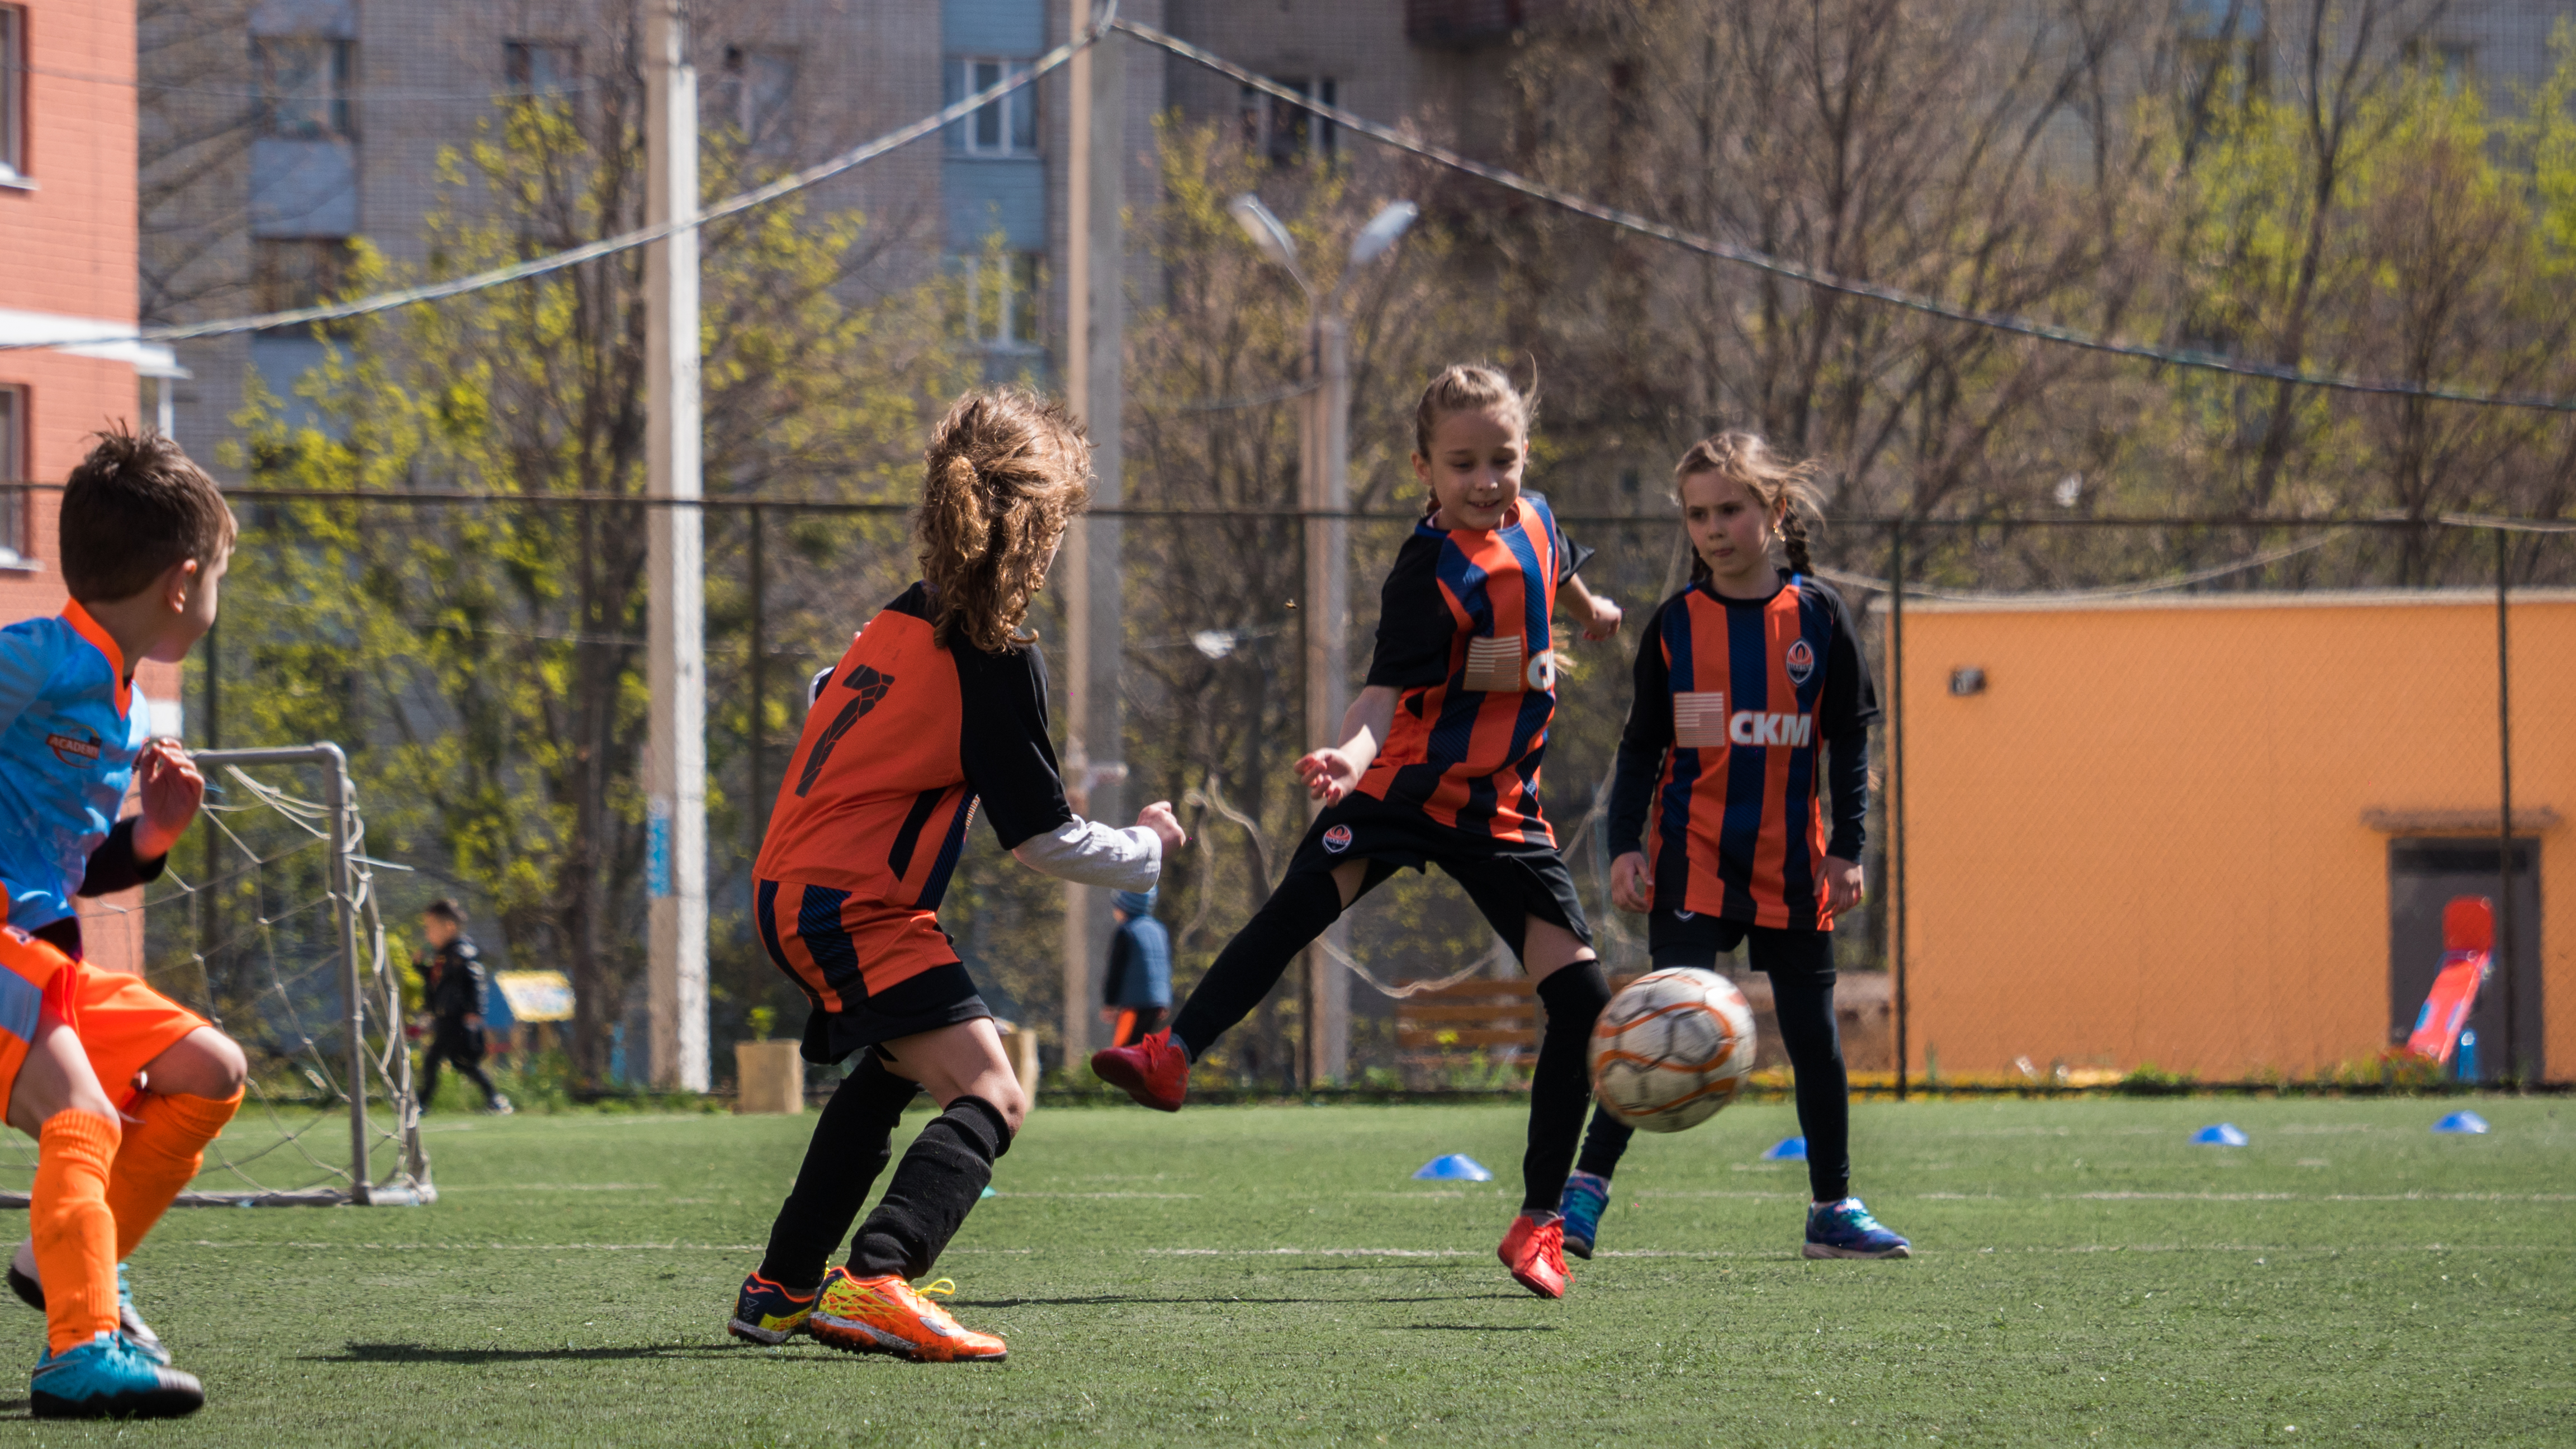 UNFPA Ukraine | Football for girls: how we overcome stereotypes